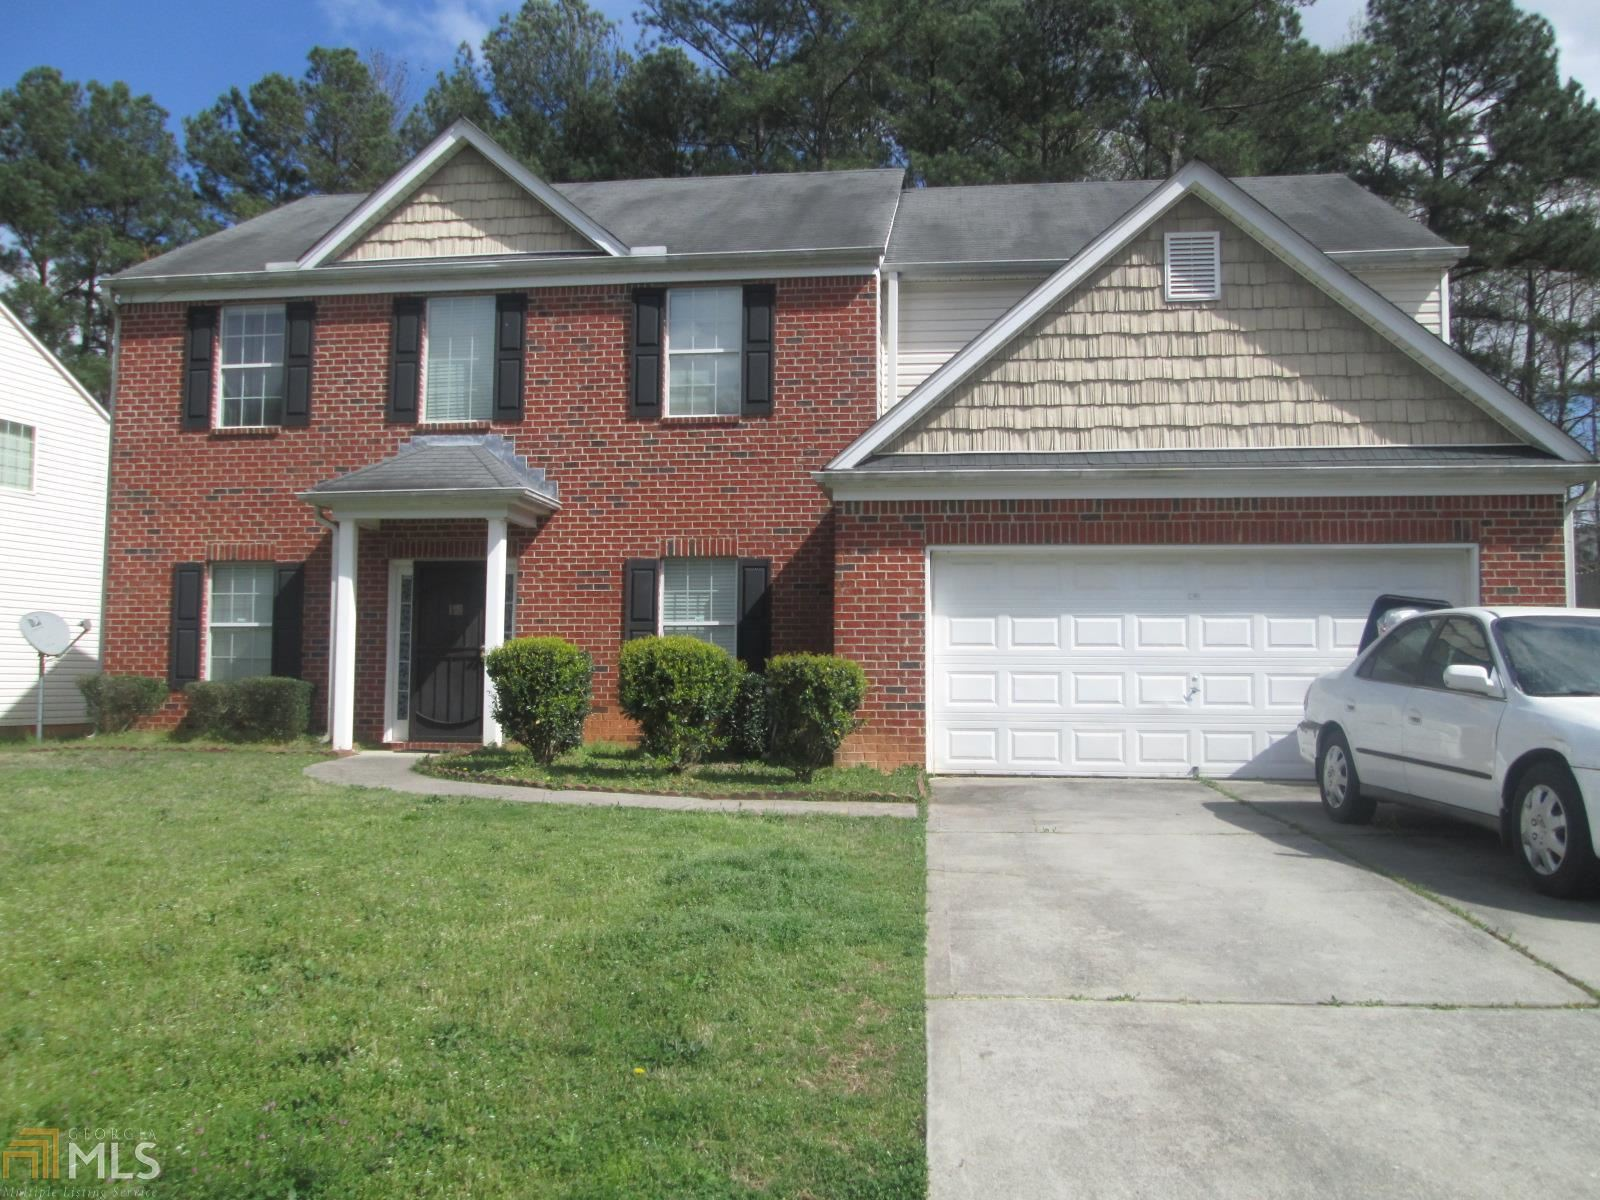 6264 Polar Fox, Riverdale, GA 30296 - #: 8765055